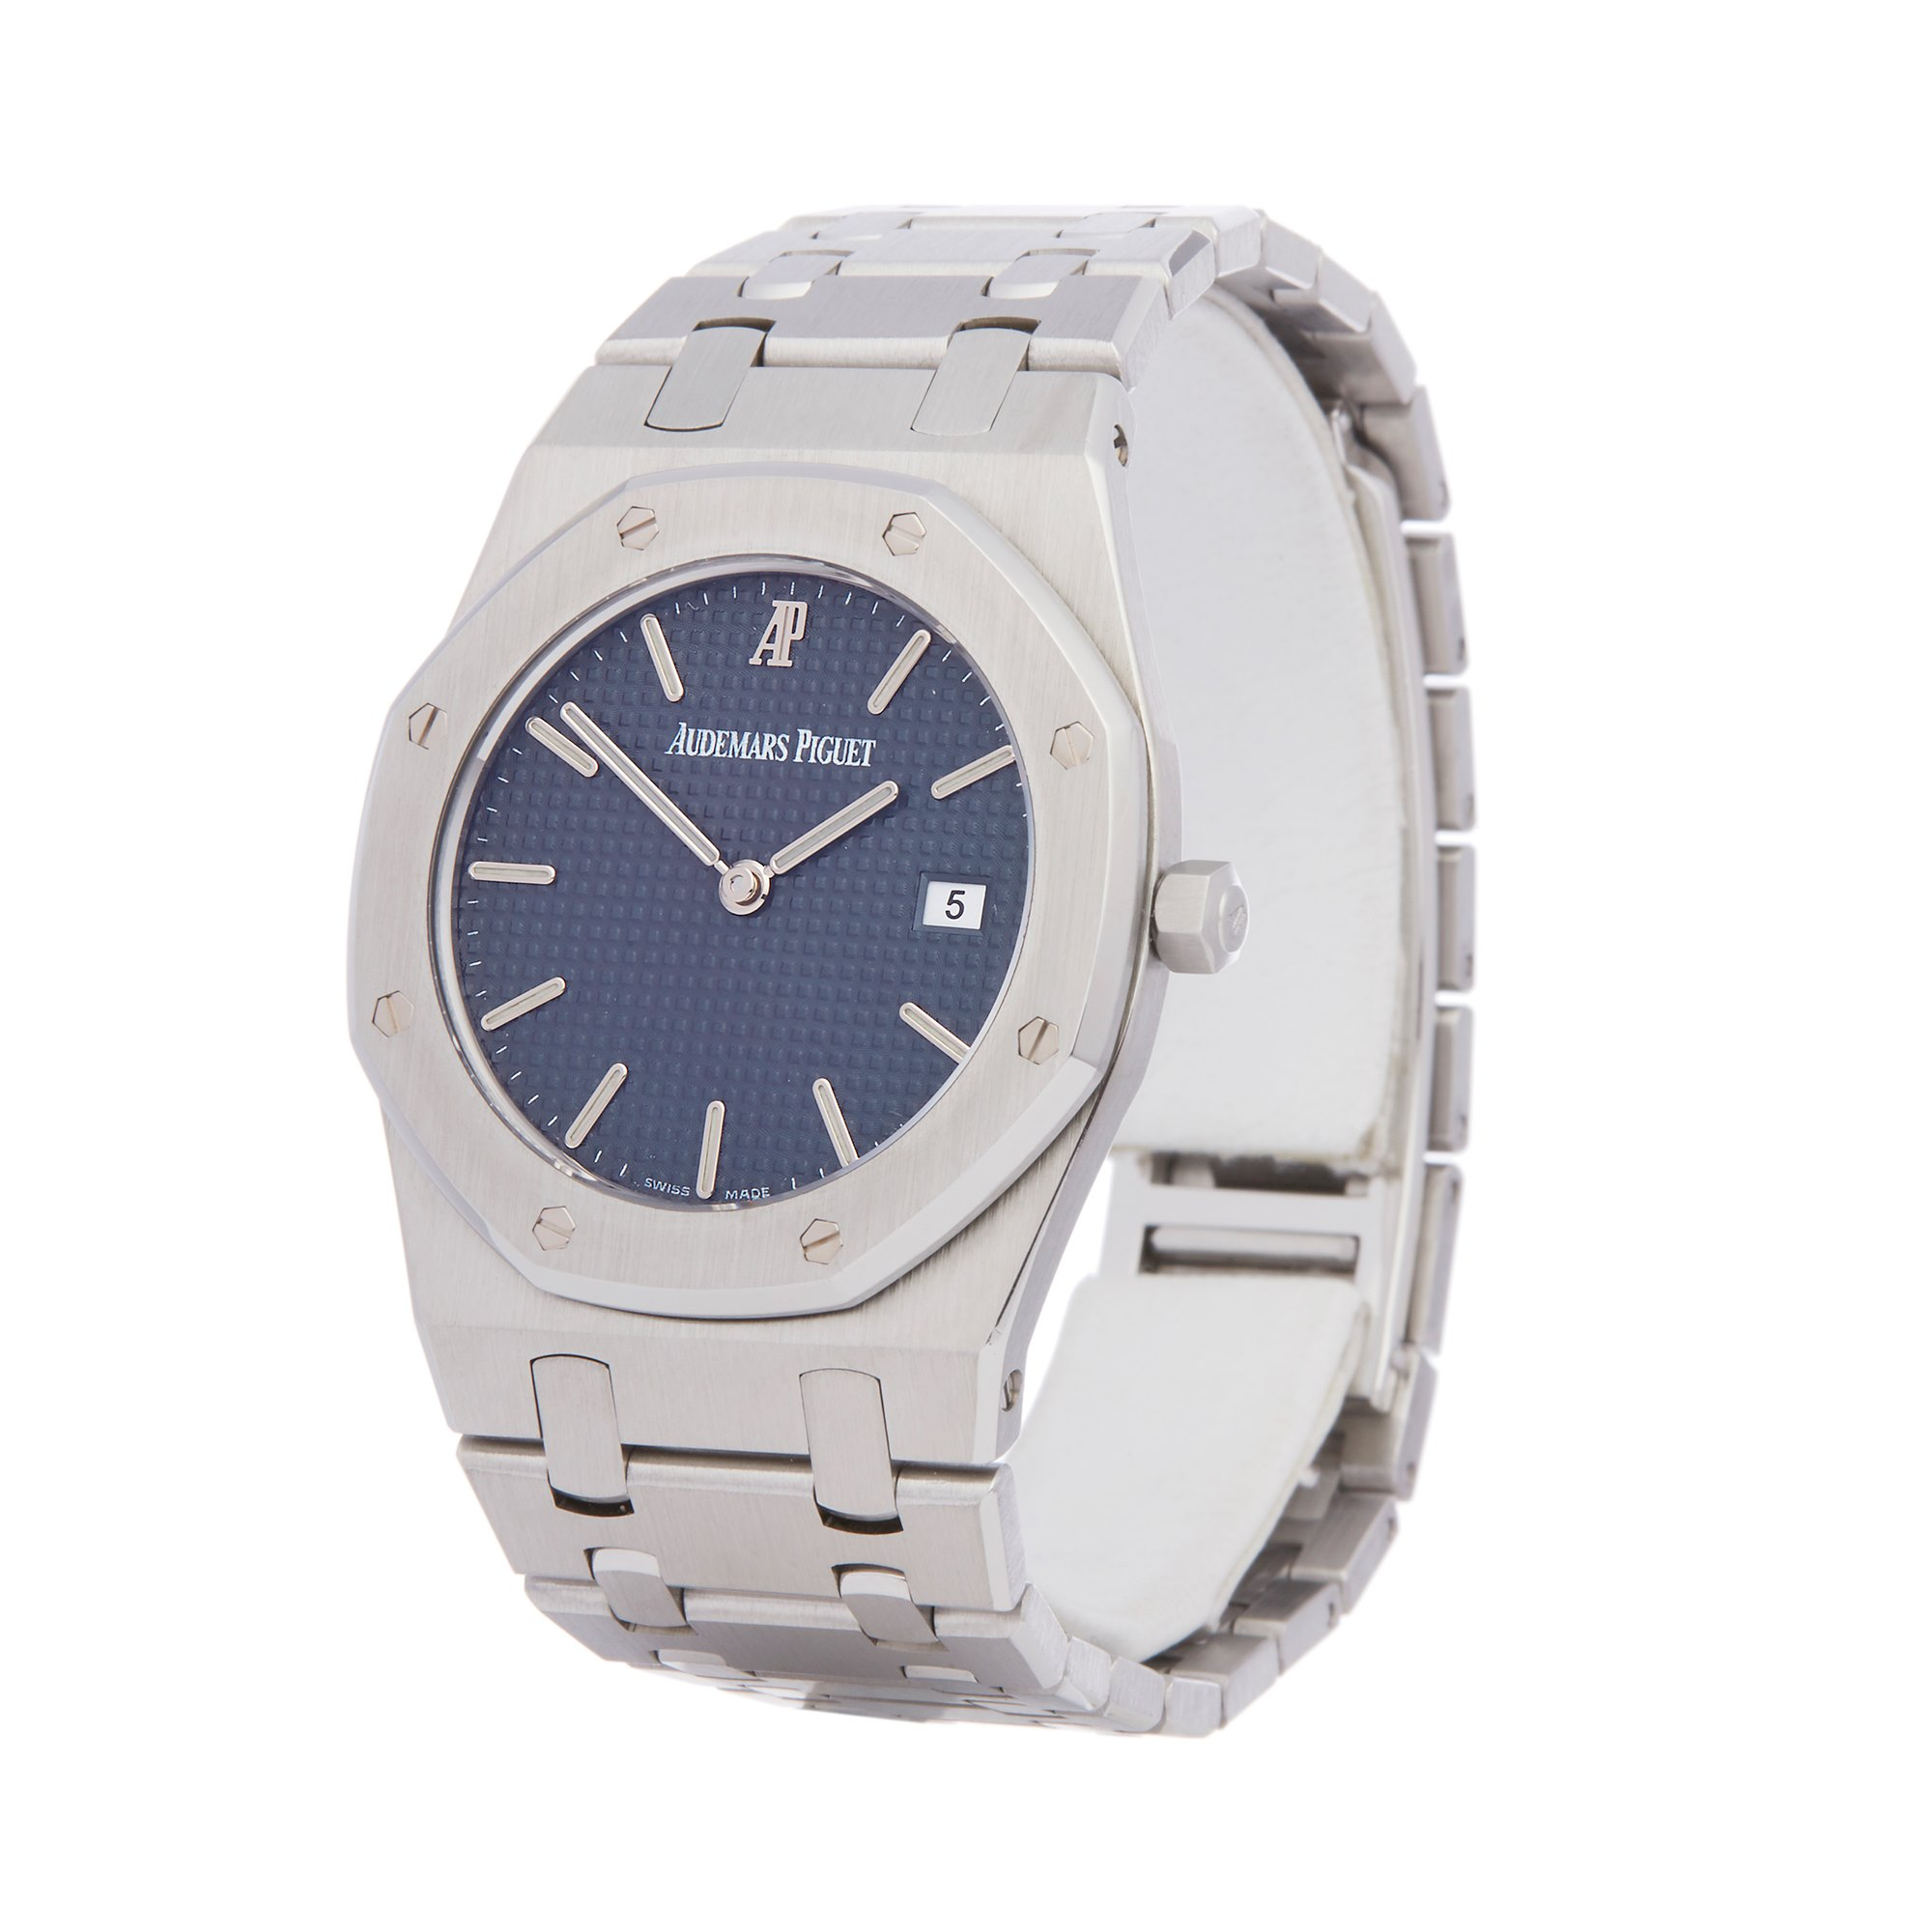 Audemars Piguet Royal Oak Stainless Steel 56175ST